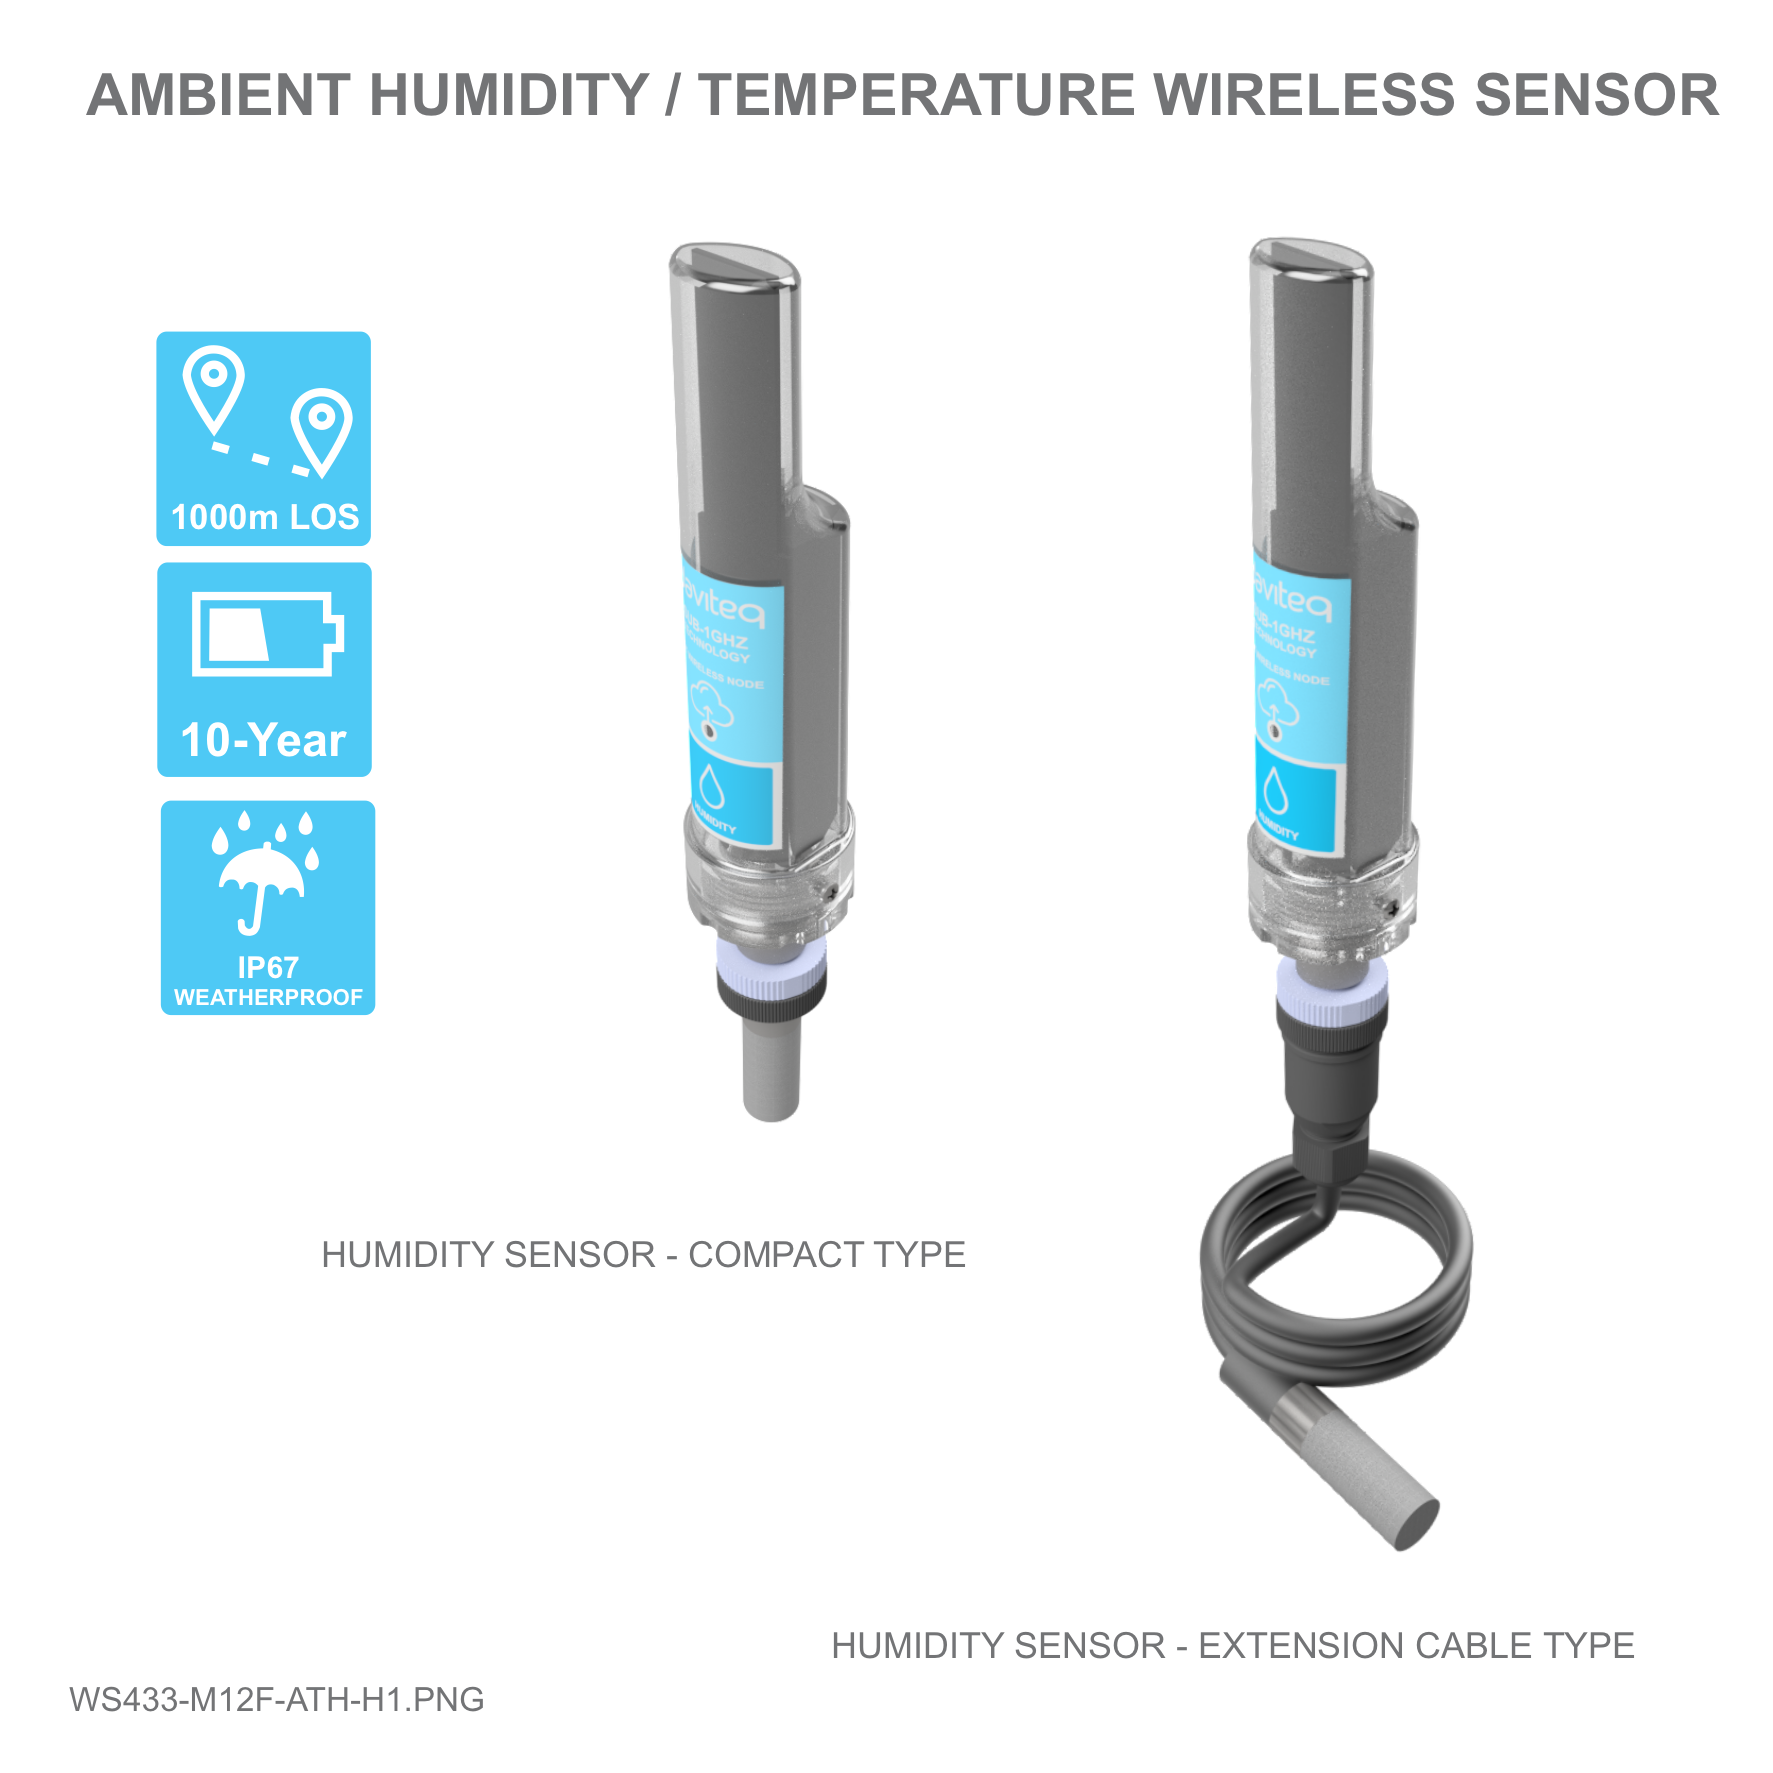 Wireless Ambient Humidity Sensor